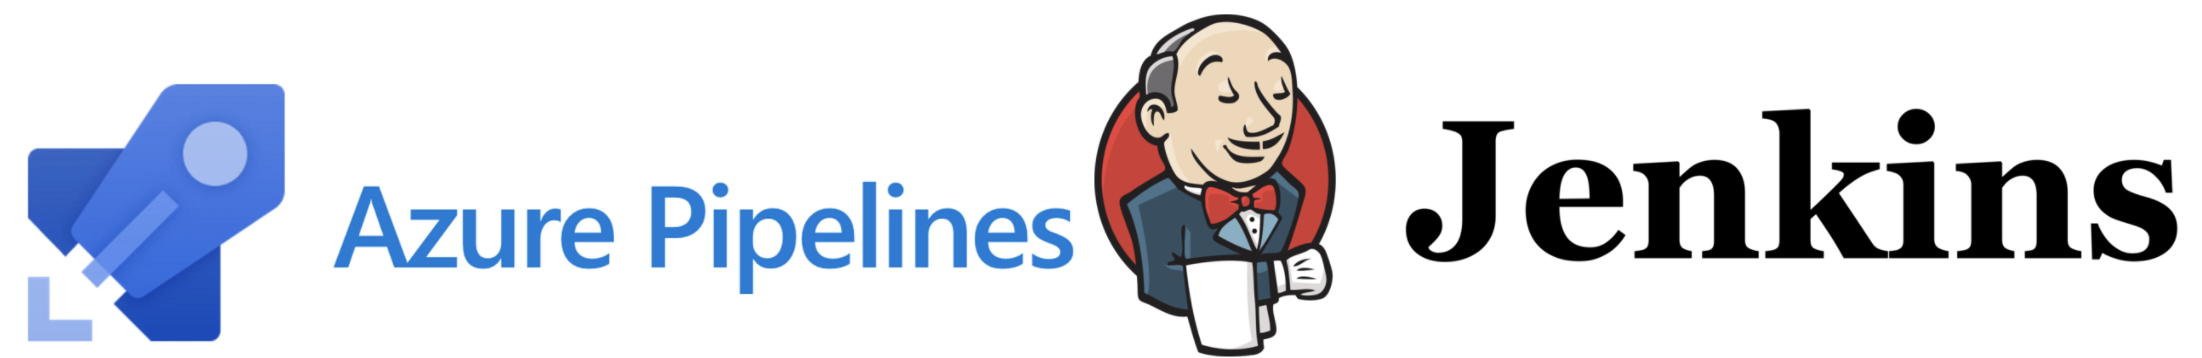 Azure Pipelines and Jenkins